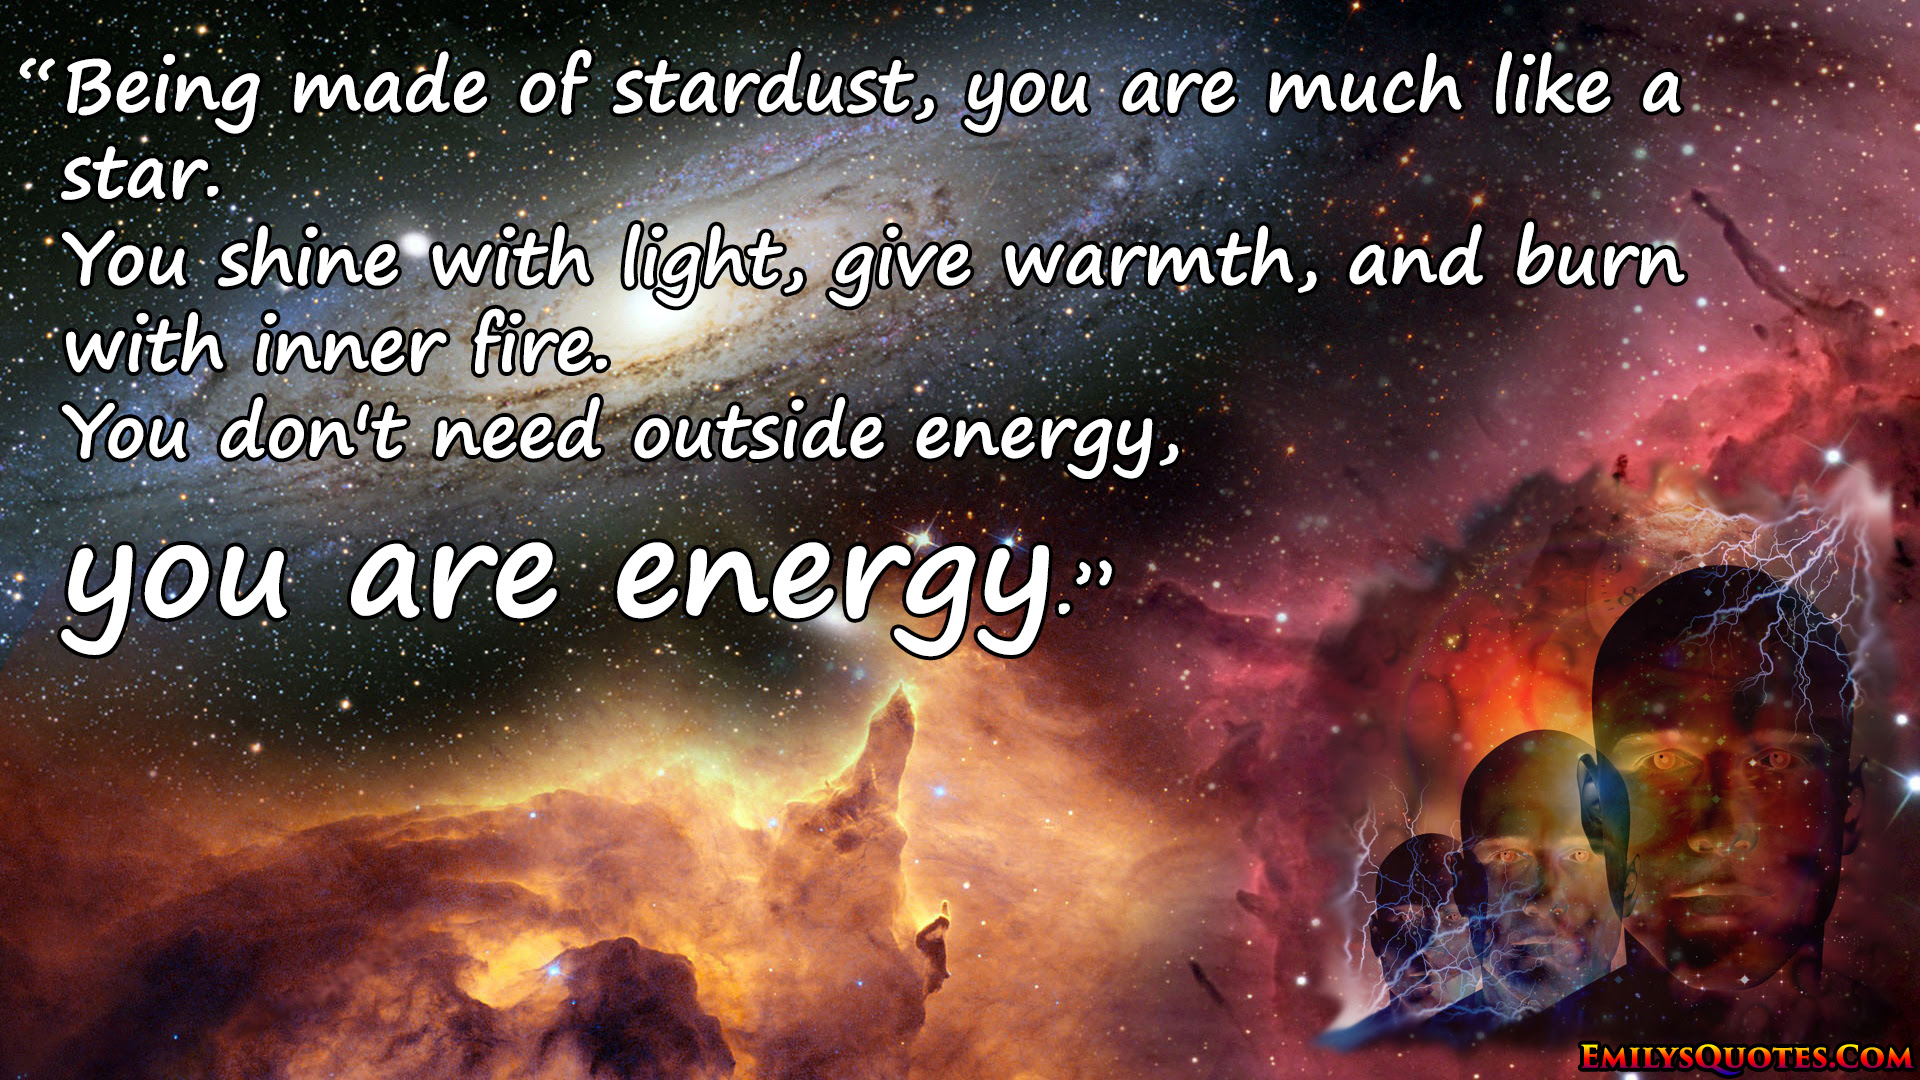 Being Made Of Stardust You Are Much Like A Star You Shine With